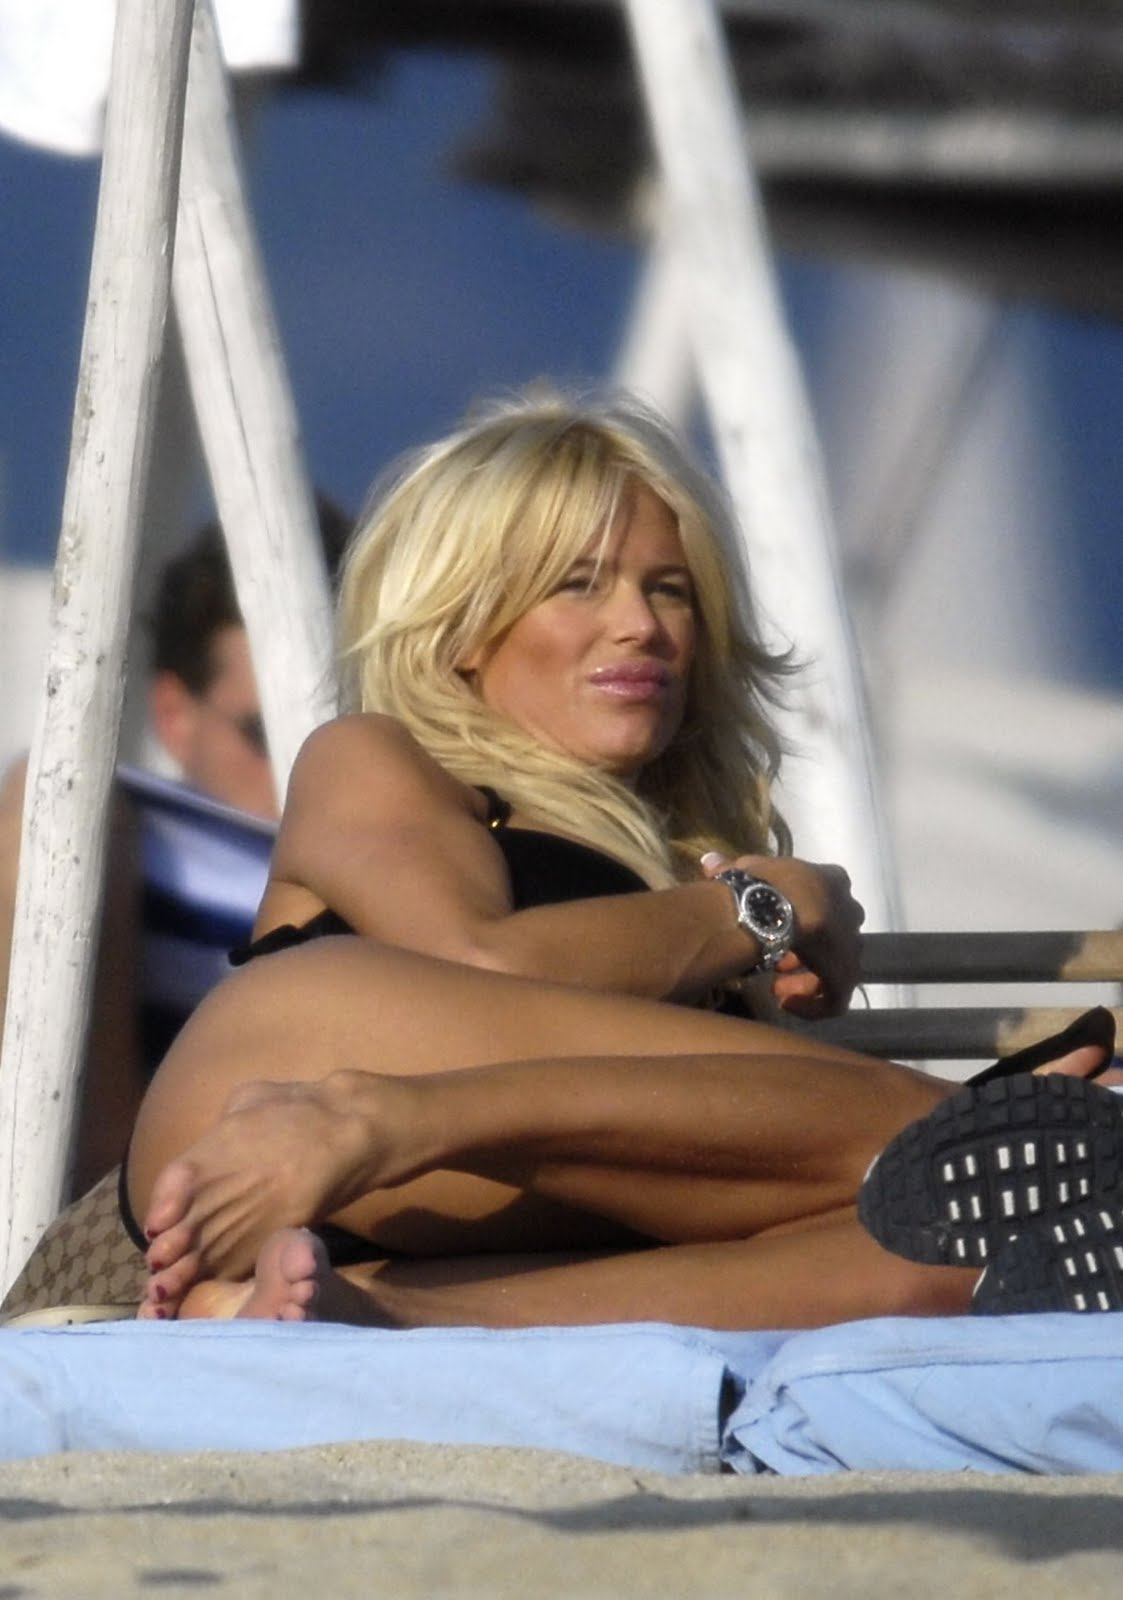 Awesome Body Of Victoria Silvstedt Pics - Awesome Body Of Victoria Silvstedt Pics